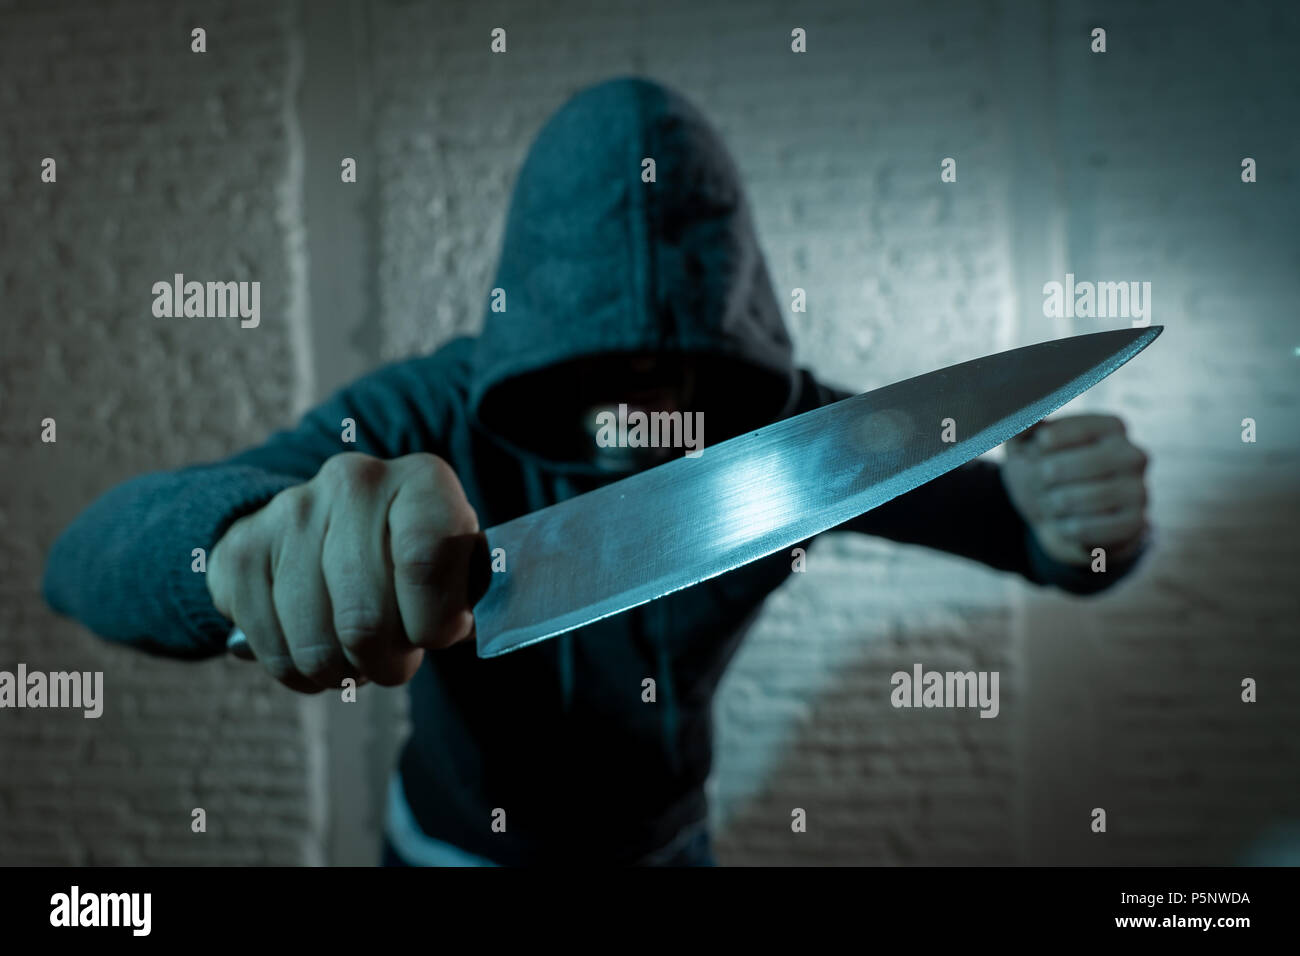 close up of a hands holding a knife of dangerous hooded man standing in the dark in London knife crime concept. - Stock Image